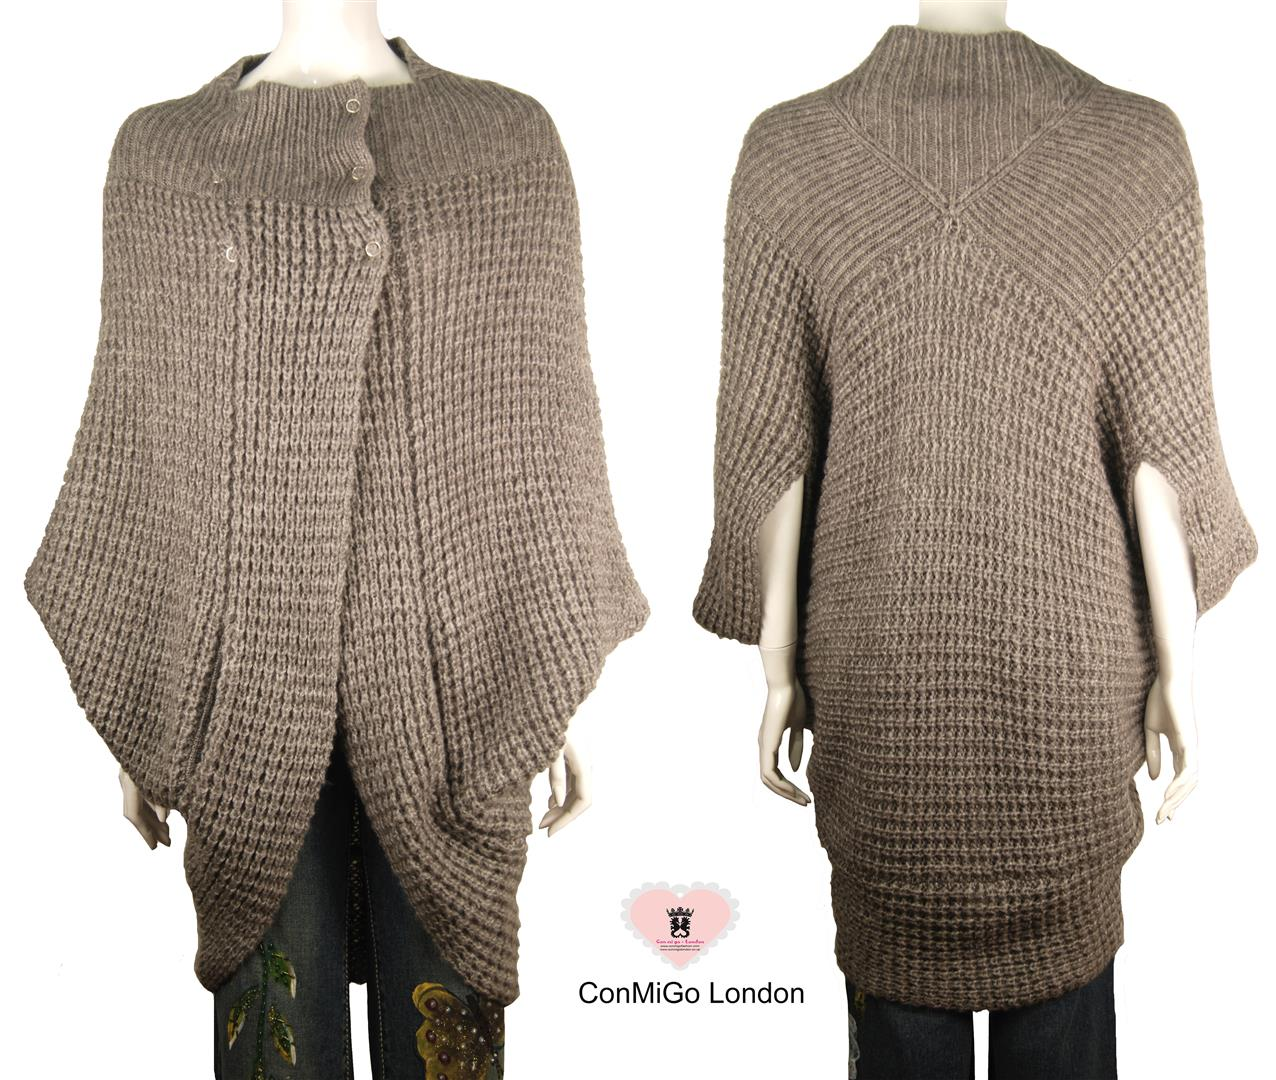 http://www.conmigolondon.co.uk/ekmps/shops/conmigo/images/conmigo-214-wool-coat-grey-12887-p.jpg